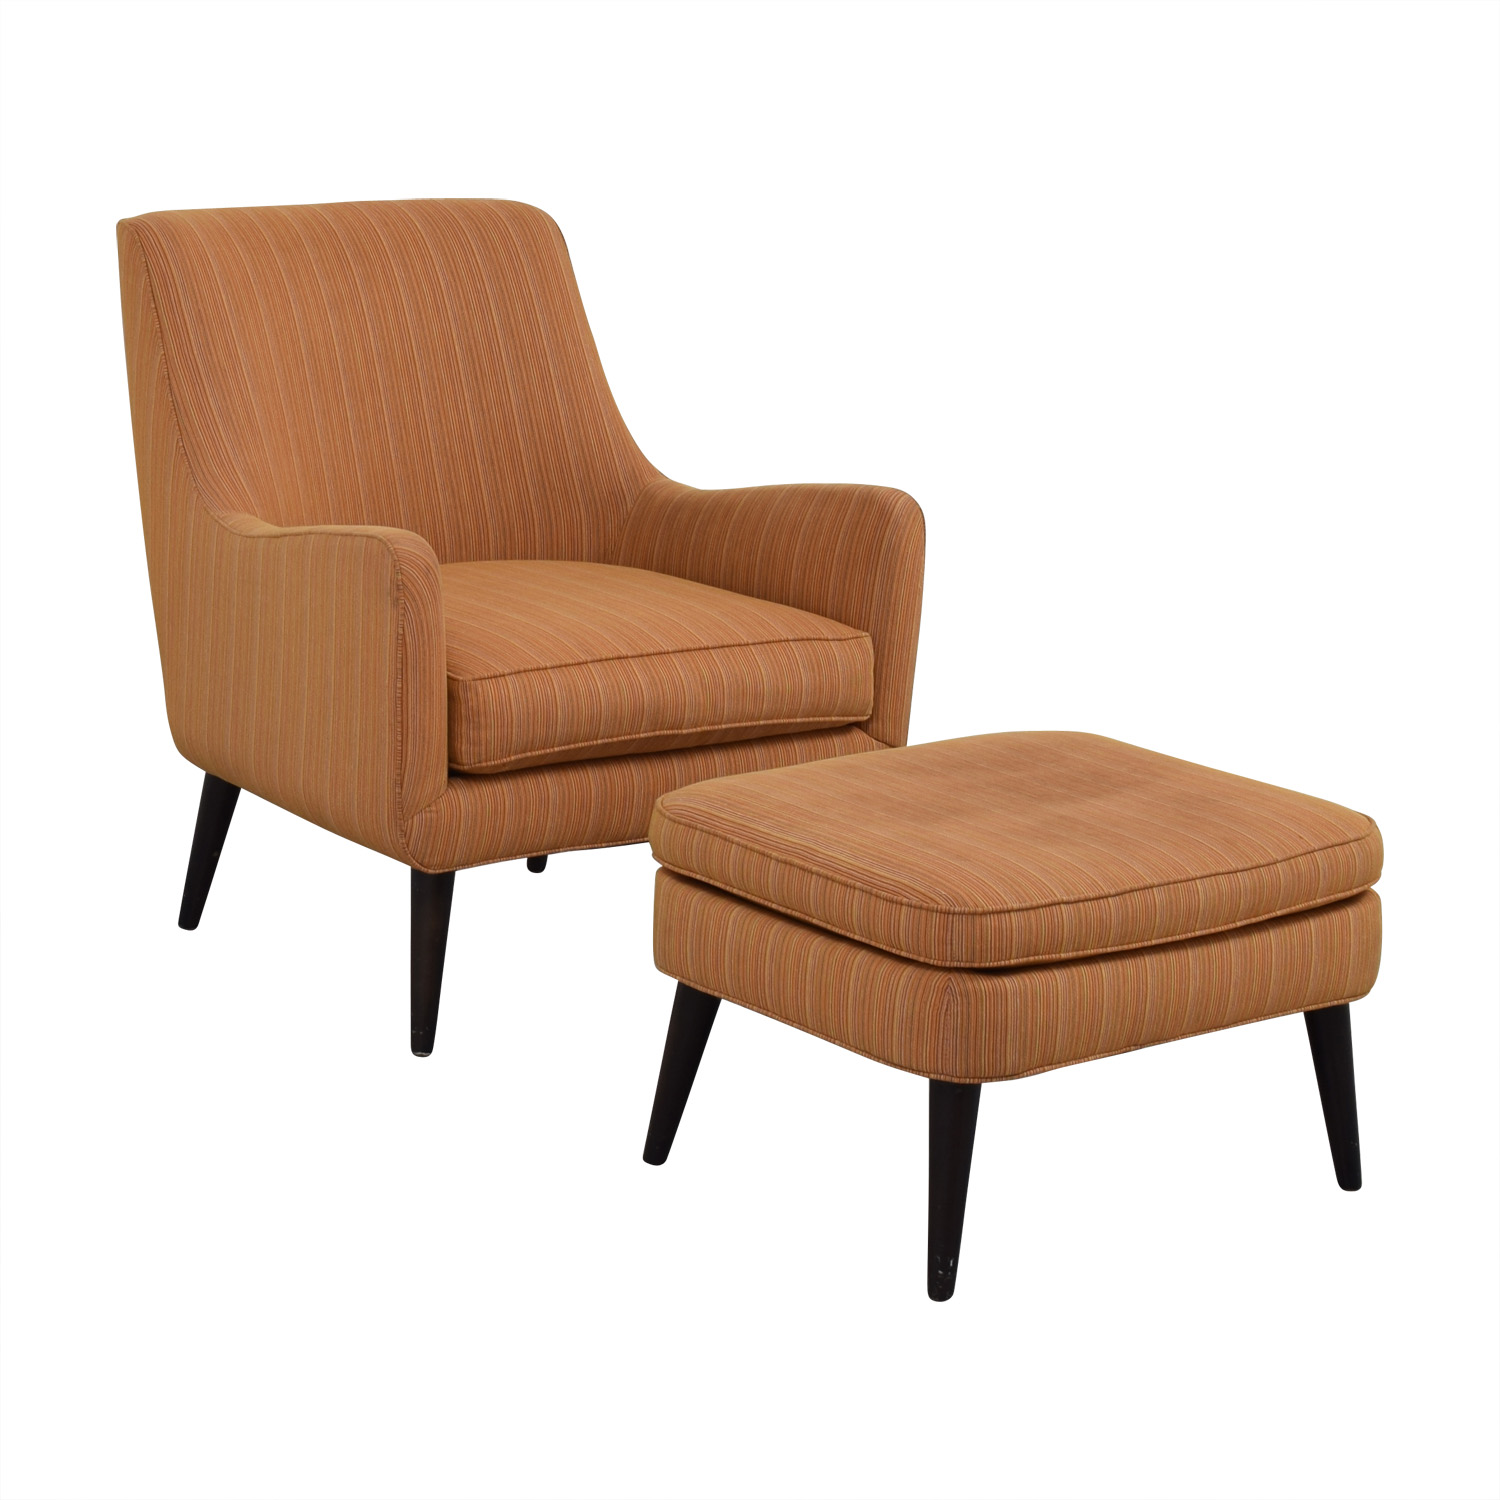 room and board chair cost plus world market chairs 86 off orange striped lounge